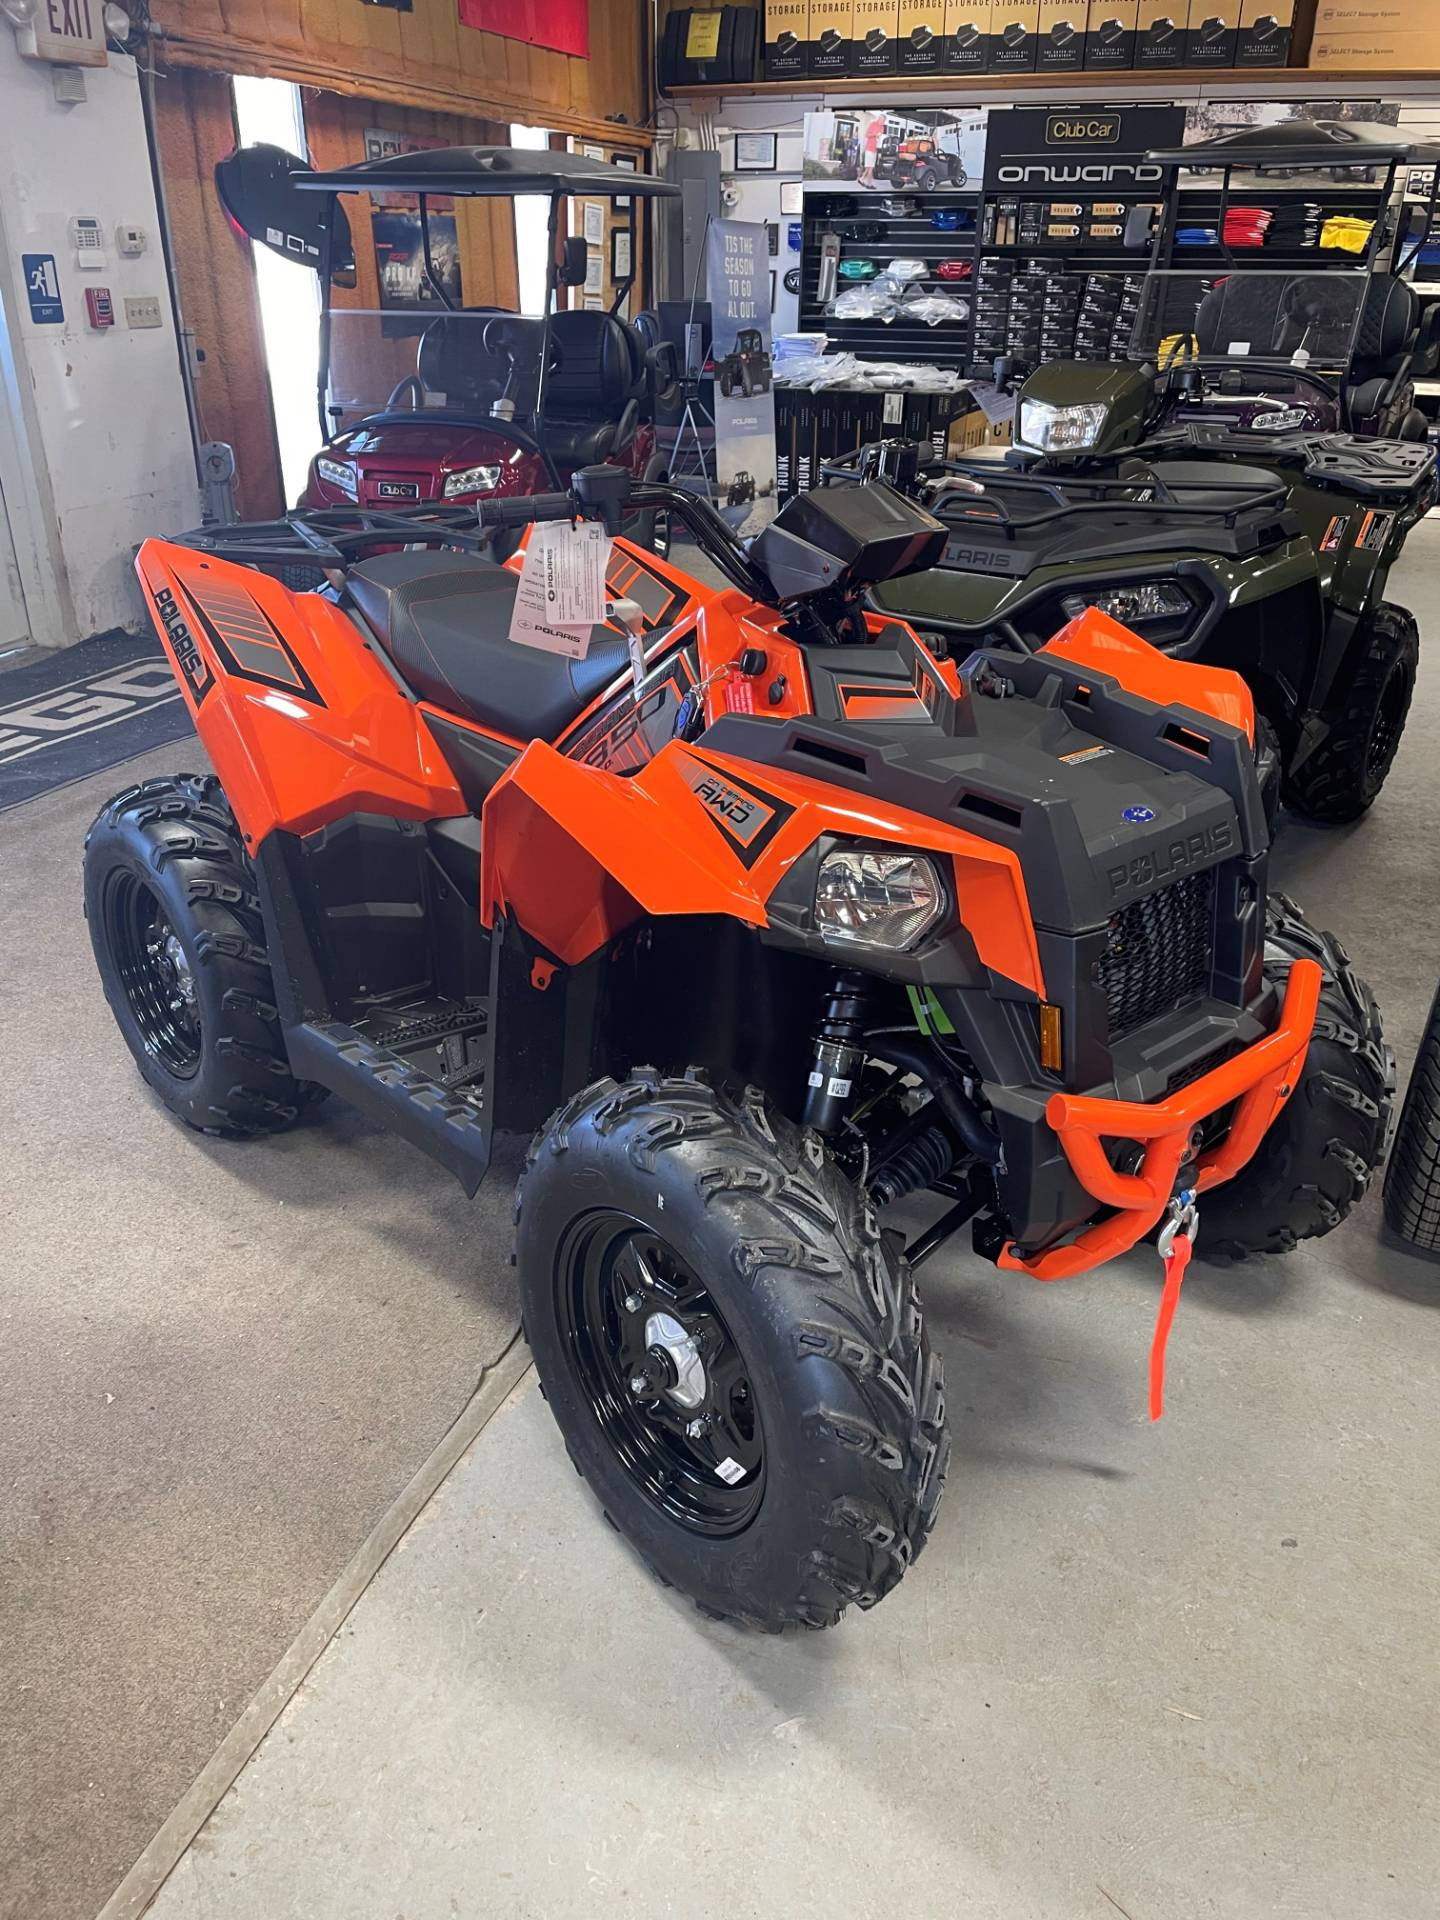 2021 Polaris Scrambler 850 in Pocono Lake, Pennsylvania - Photo 1